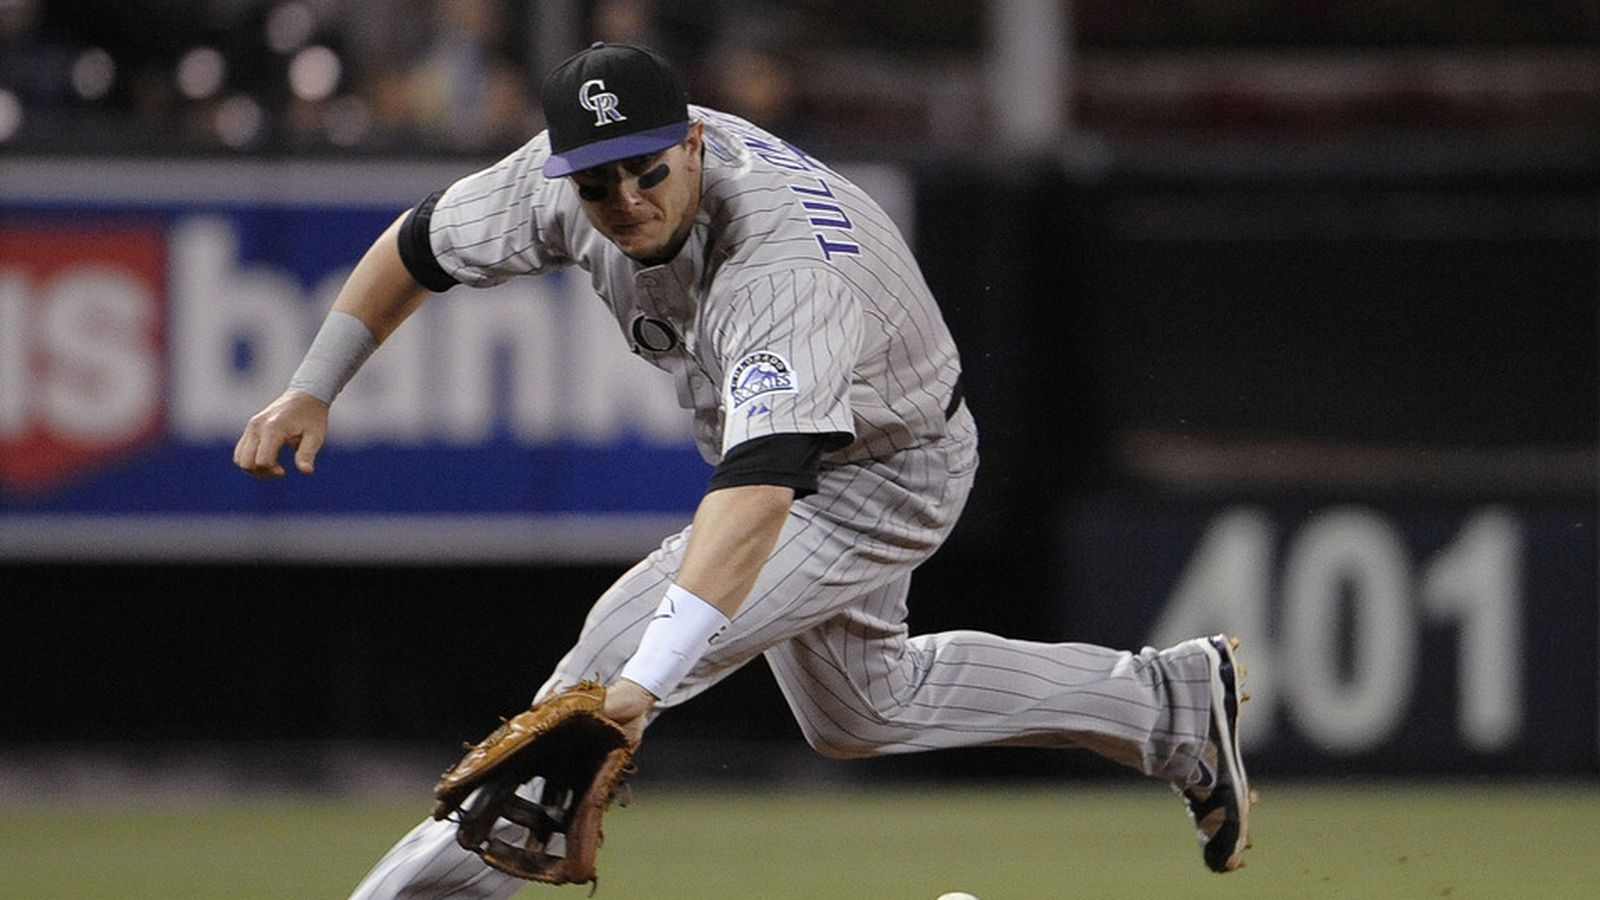 Should the Rockies trade Tulo?